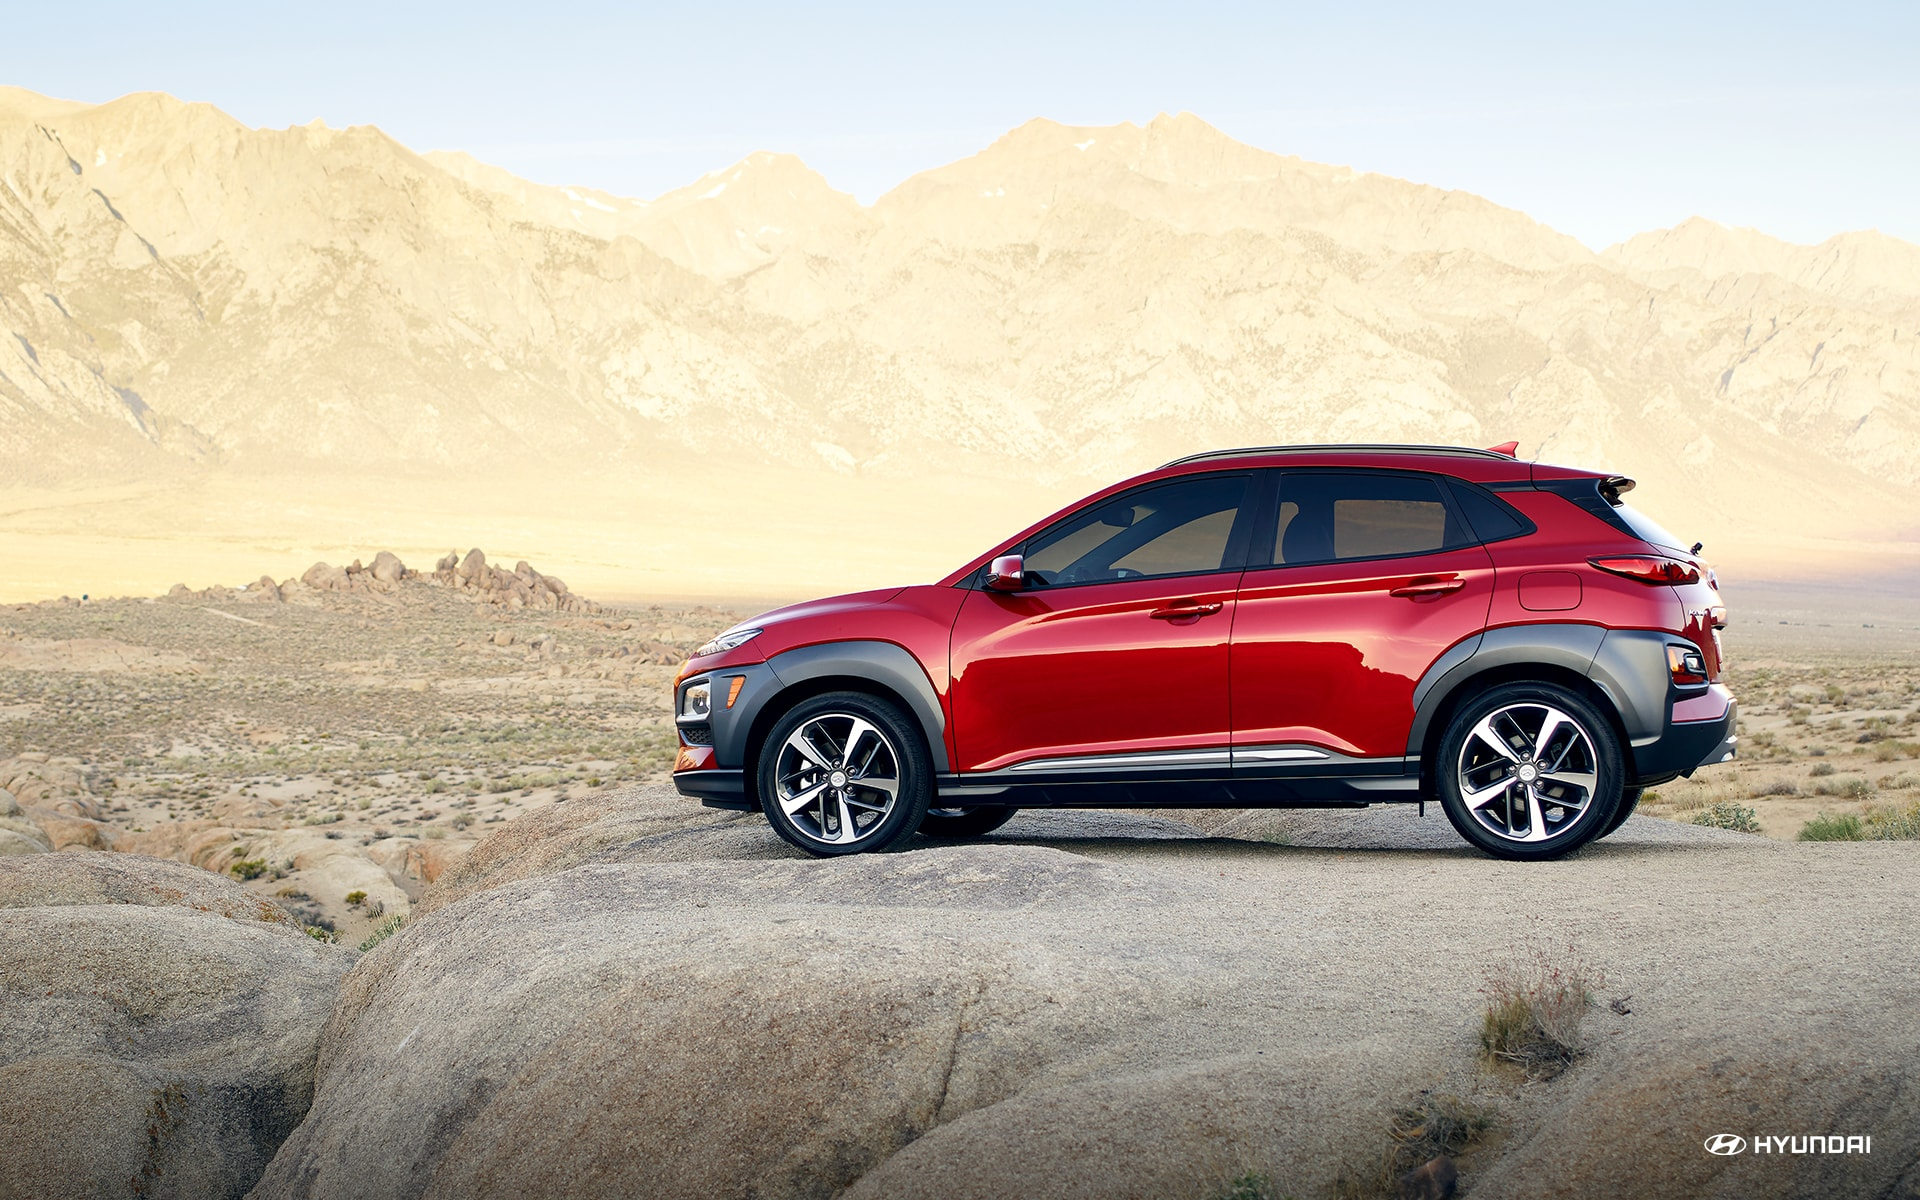 2019 Hyundai Kona Leasing near Bowie, MD